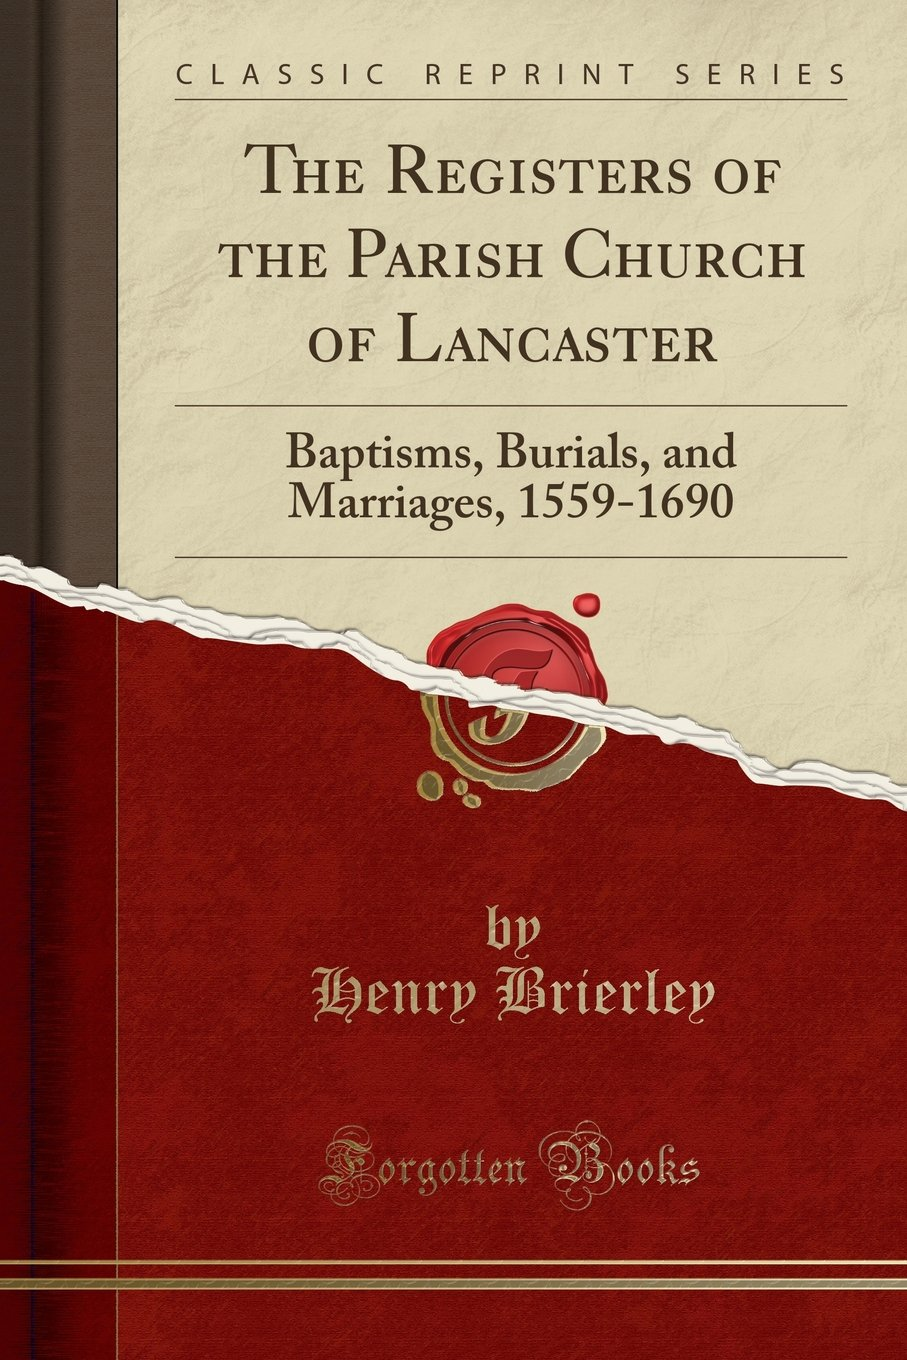 Read Online The Registers of the Parish Church of Lancaster: Baptisms, Burials, and Marriages, 1559-1690 (Classic Reprint) PDF